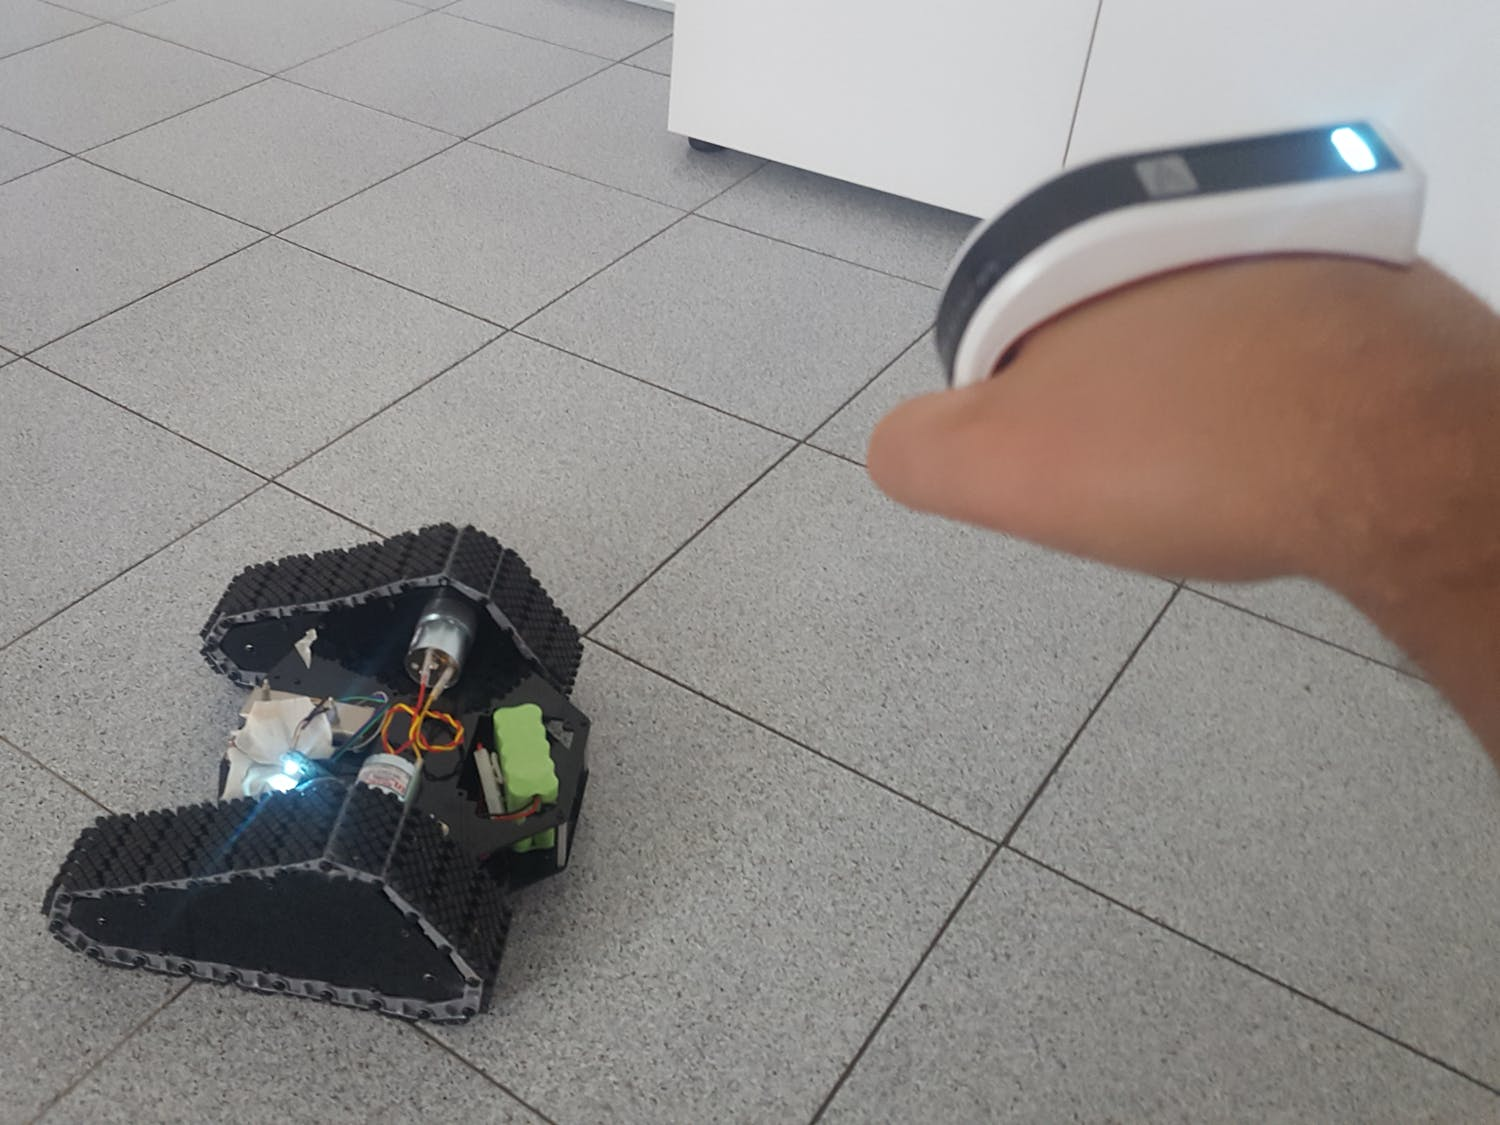 Arduino Tracked Rover Robot Control with Gesture